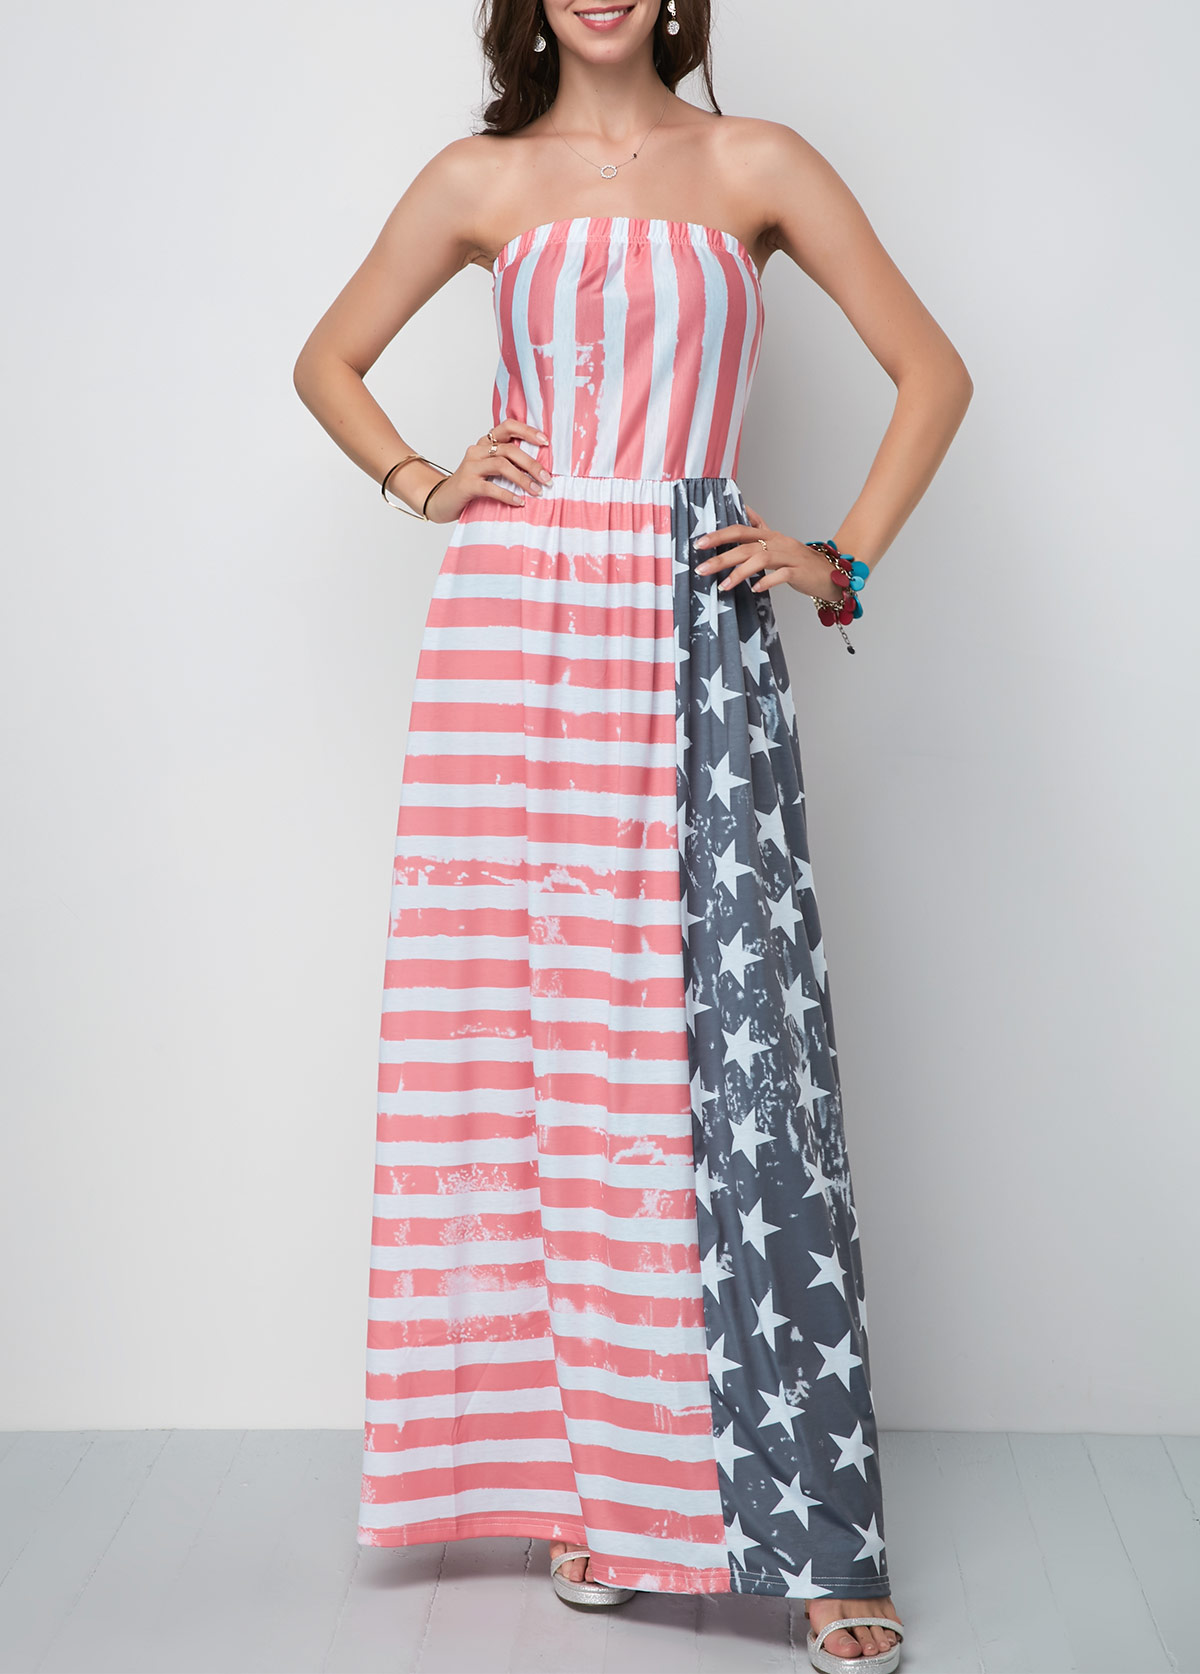 Star and Stripe Print Maxi Dress